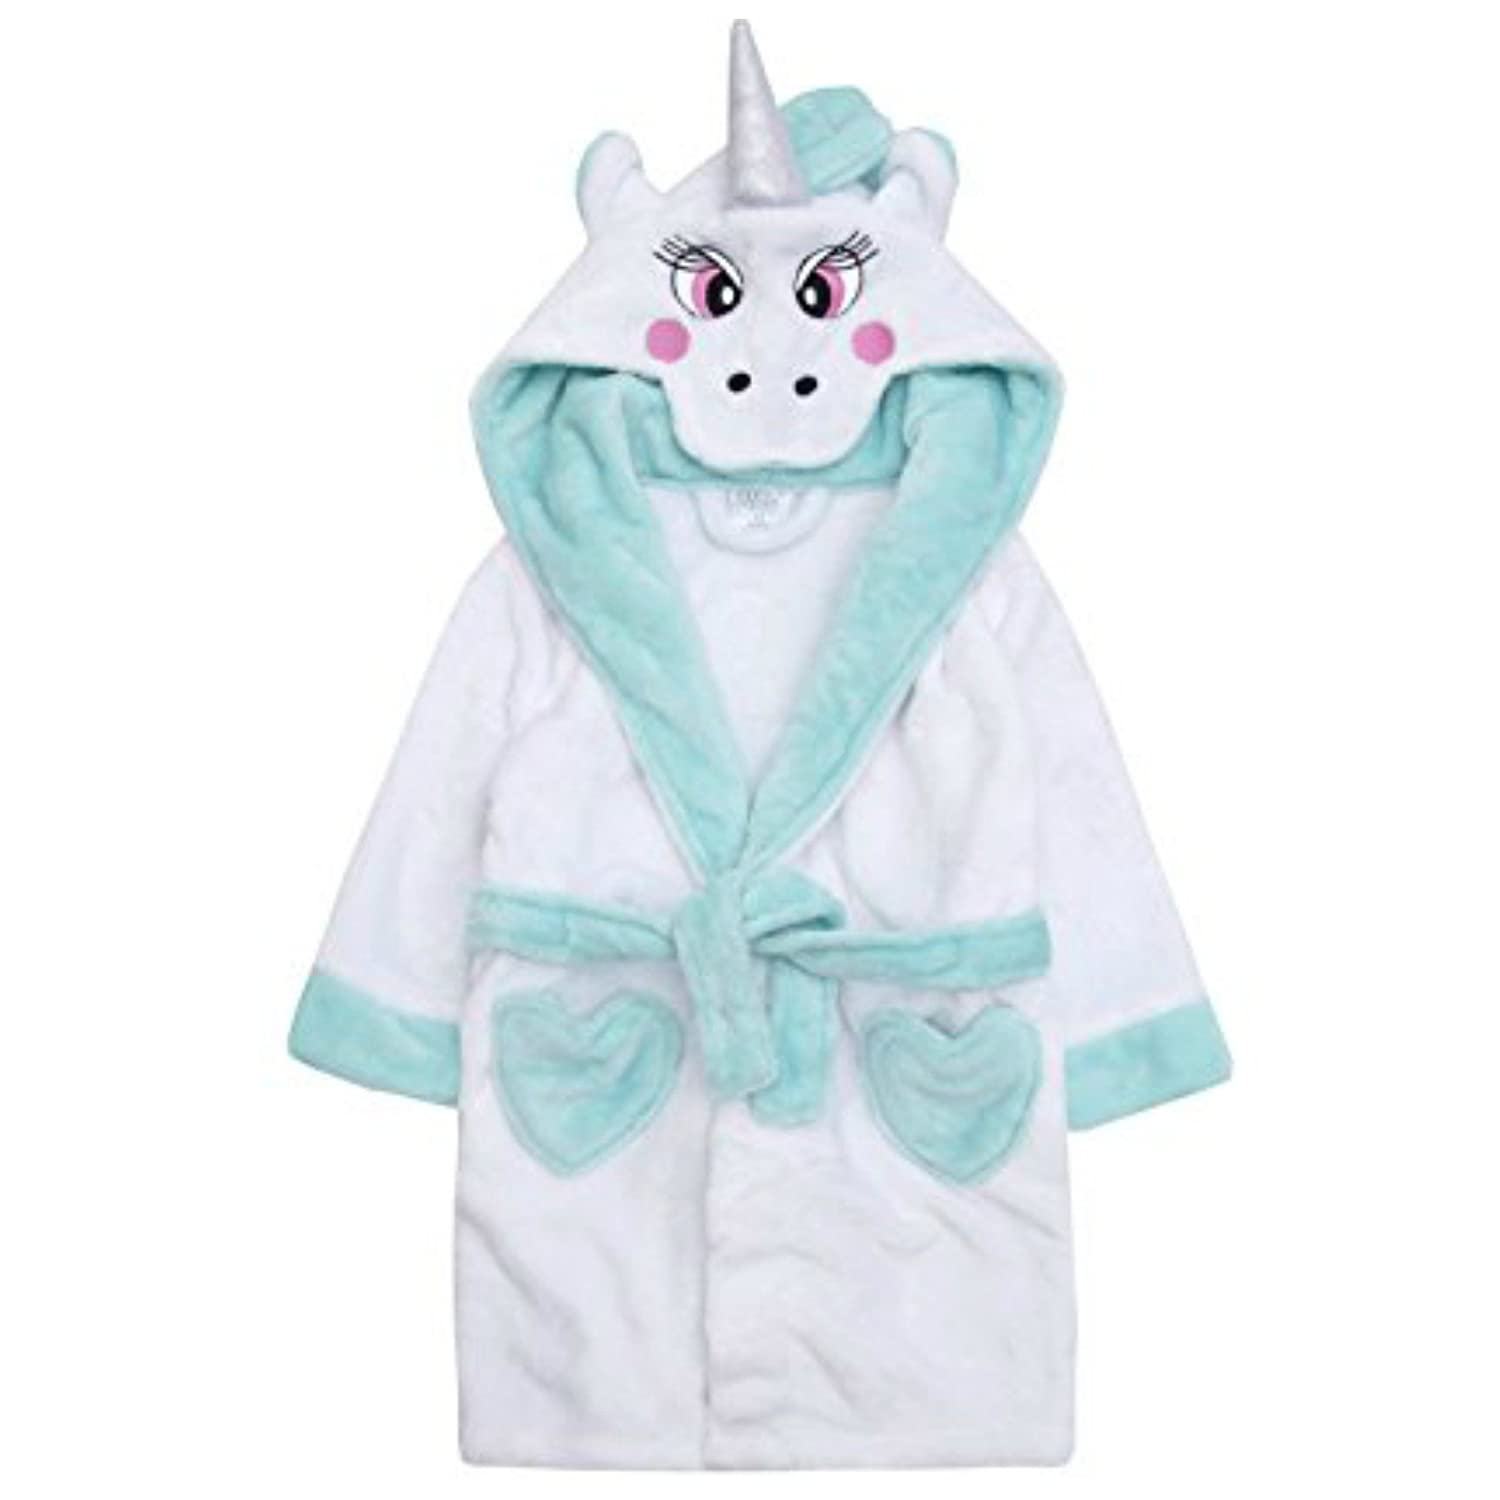 Girls Unicorn Dressing Gown Robe Face To Hood Horn and Tail 2-3Y To 13Y